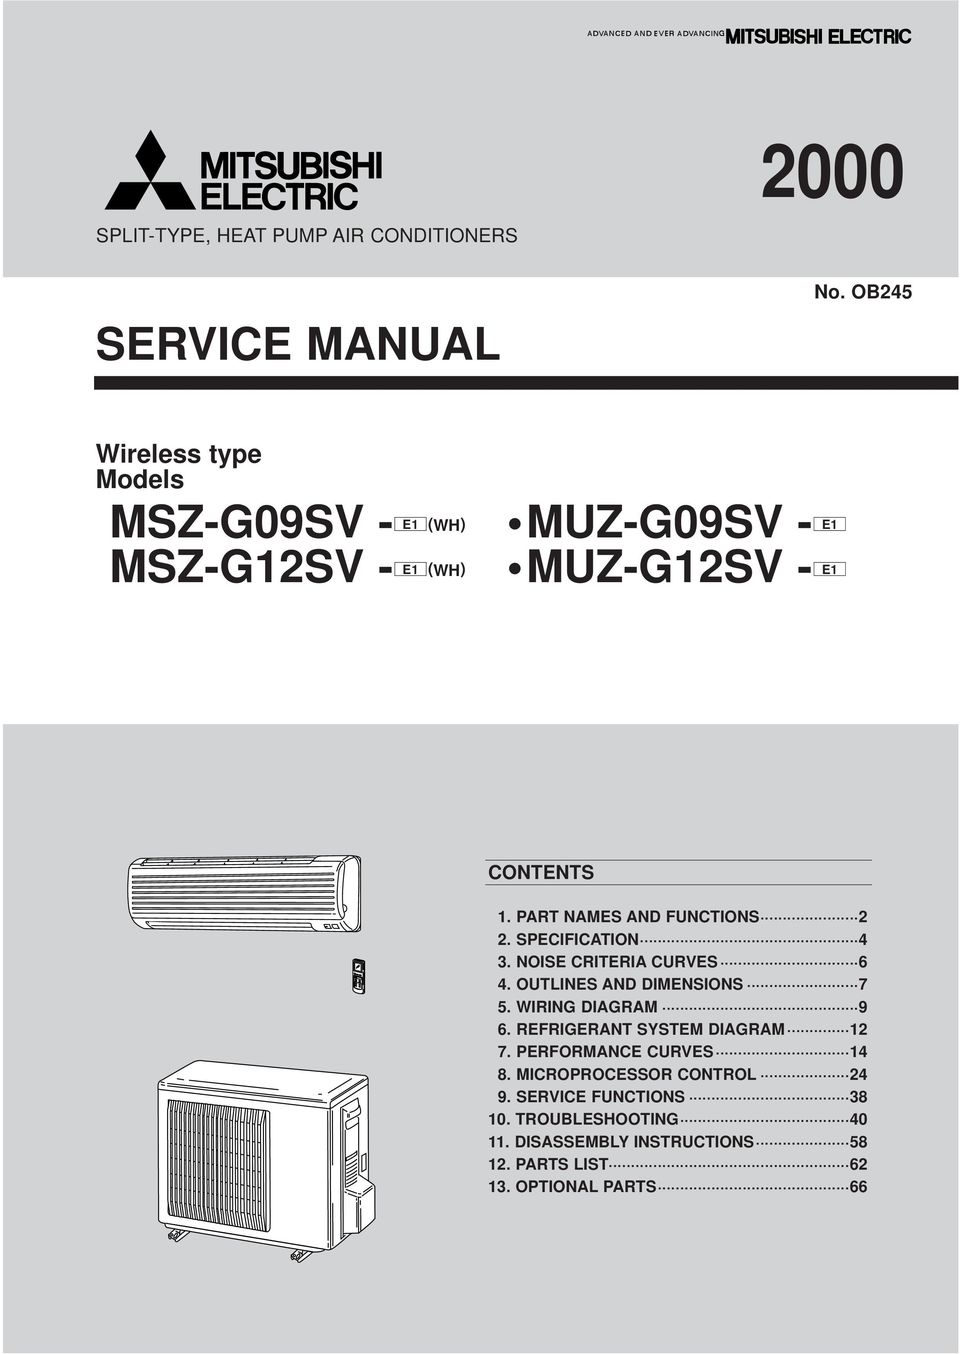 Muz G09sv Msz G12sv Pdf Mitsubishi Split System Wiring Diagram Part Names And Functions Specification 4 3 Noise Criteria Curves 6 Outlines